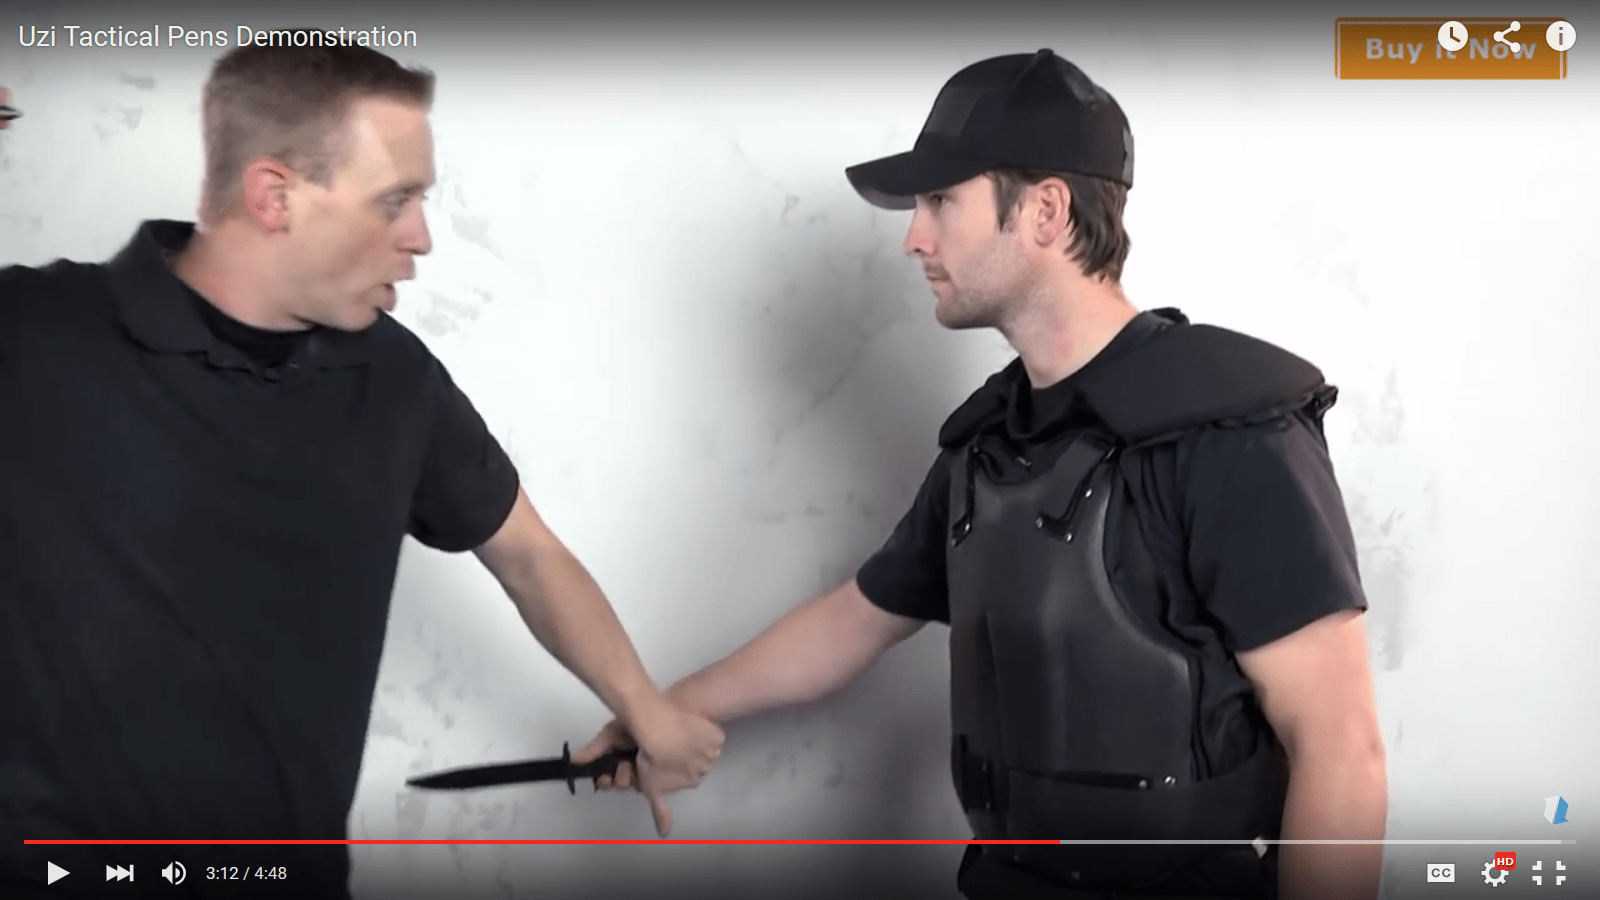 Blocking the knife-holding hand